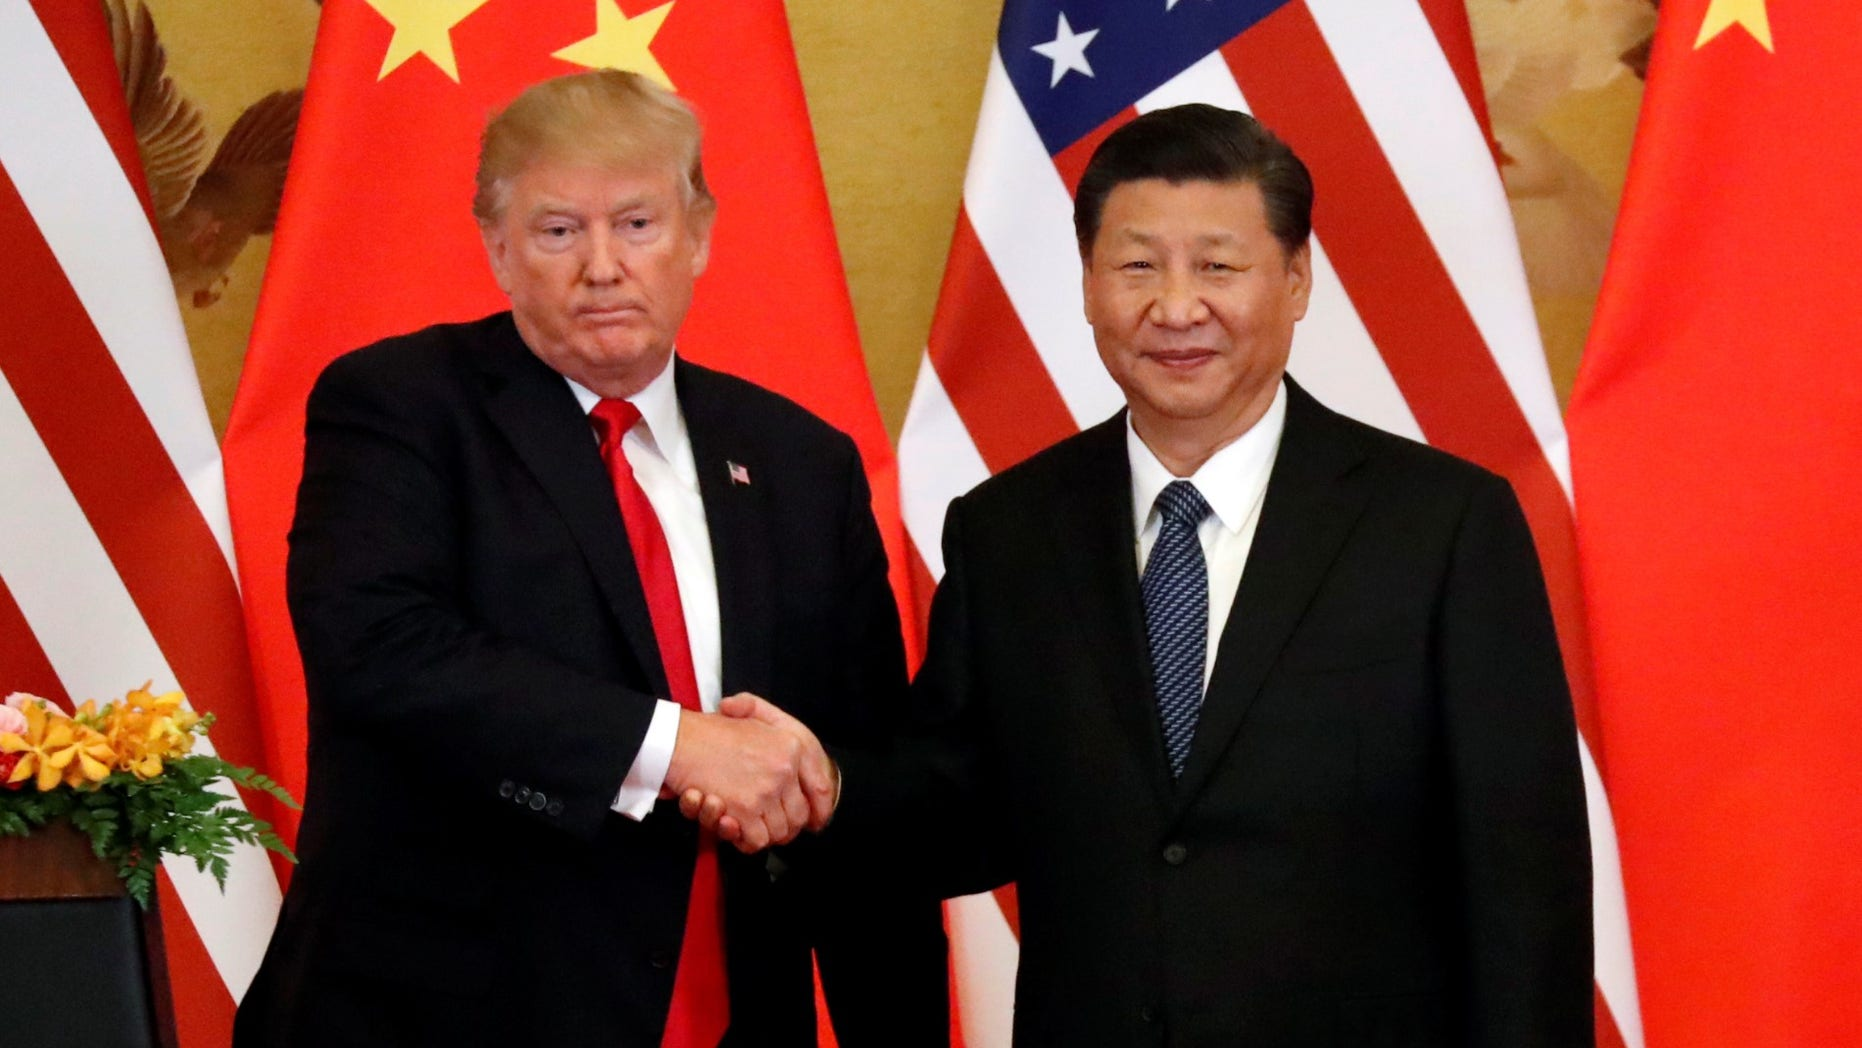 FILE -- President Donald Trump and China's President Xi Jinping make joint statements at the Great Hall of the People in Beijing, China, November 9, 2017.